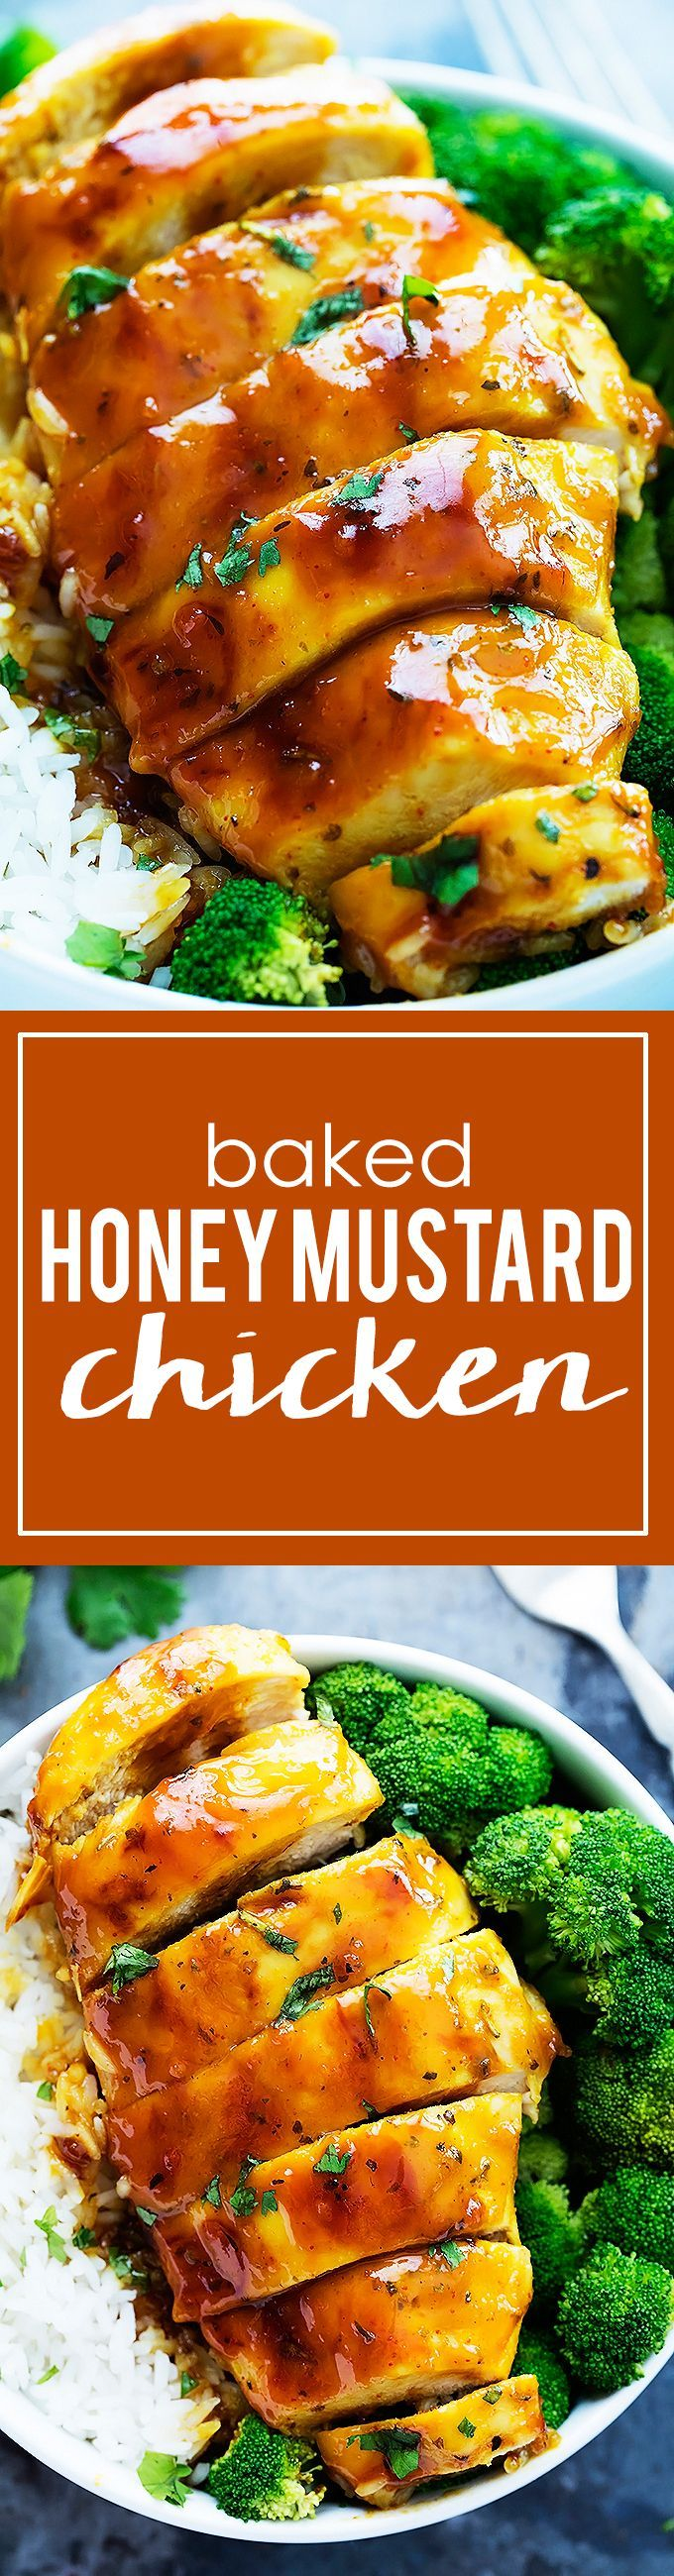 Savory, juicy chicken baked in a zesty honey mustard sauce! Perfect for serving with your favorite veggies over noodles or rice. Tell me you…